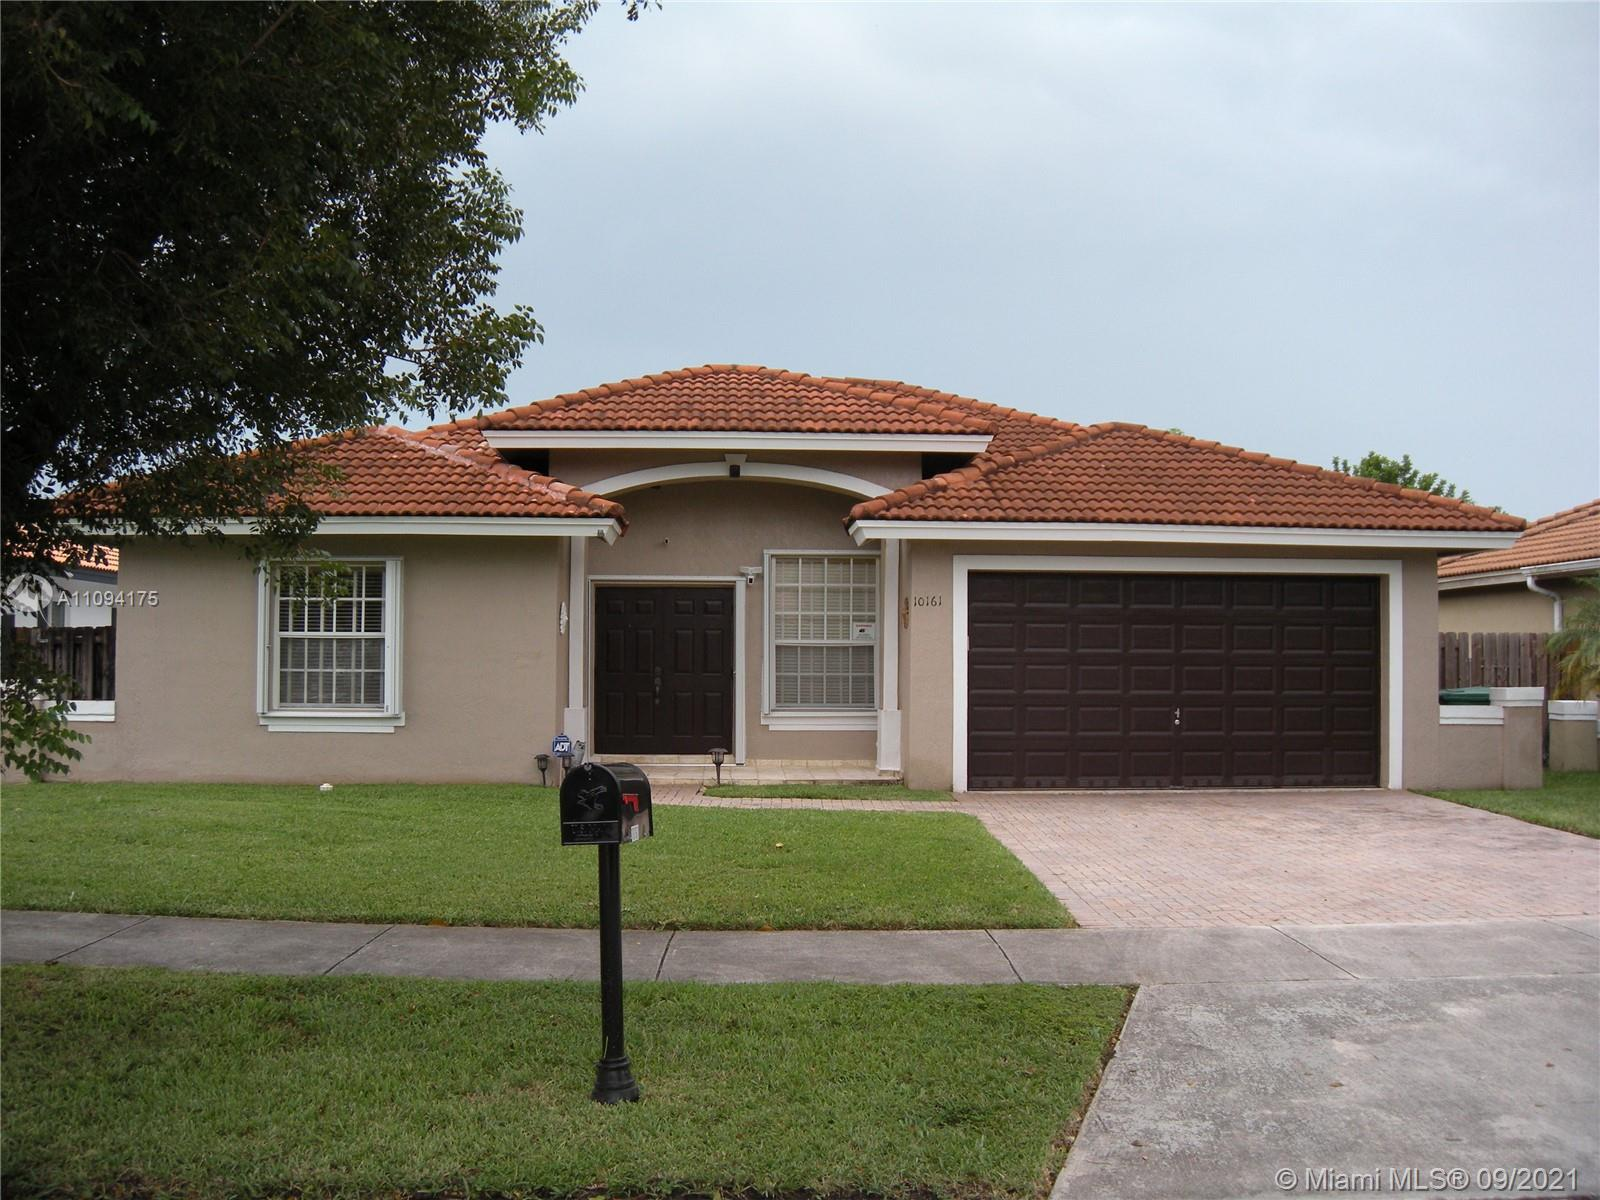 Located in the highly desirable Garden Hills community 2 minutes away from the West Kendall Baptist Hospital, shopping centers, restaurants and great schools. One of the few communities in the Hammocks/Forest Lakes area with no Homeowners Association. Large premium 60 X 134 lot ready for a sparkling pool and a Tiki Hut, 18 X 18 Brazilian Porcelain Tile throughout, high ceilings, attached 2 car garage with garage door opener, formal dining room, family room, new accordion hurricane shutters in all windows and doors, special touches throughout, walk-in closets, master bedroom with full bath and 2 closets, central AC, newer exterior paint and more.